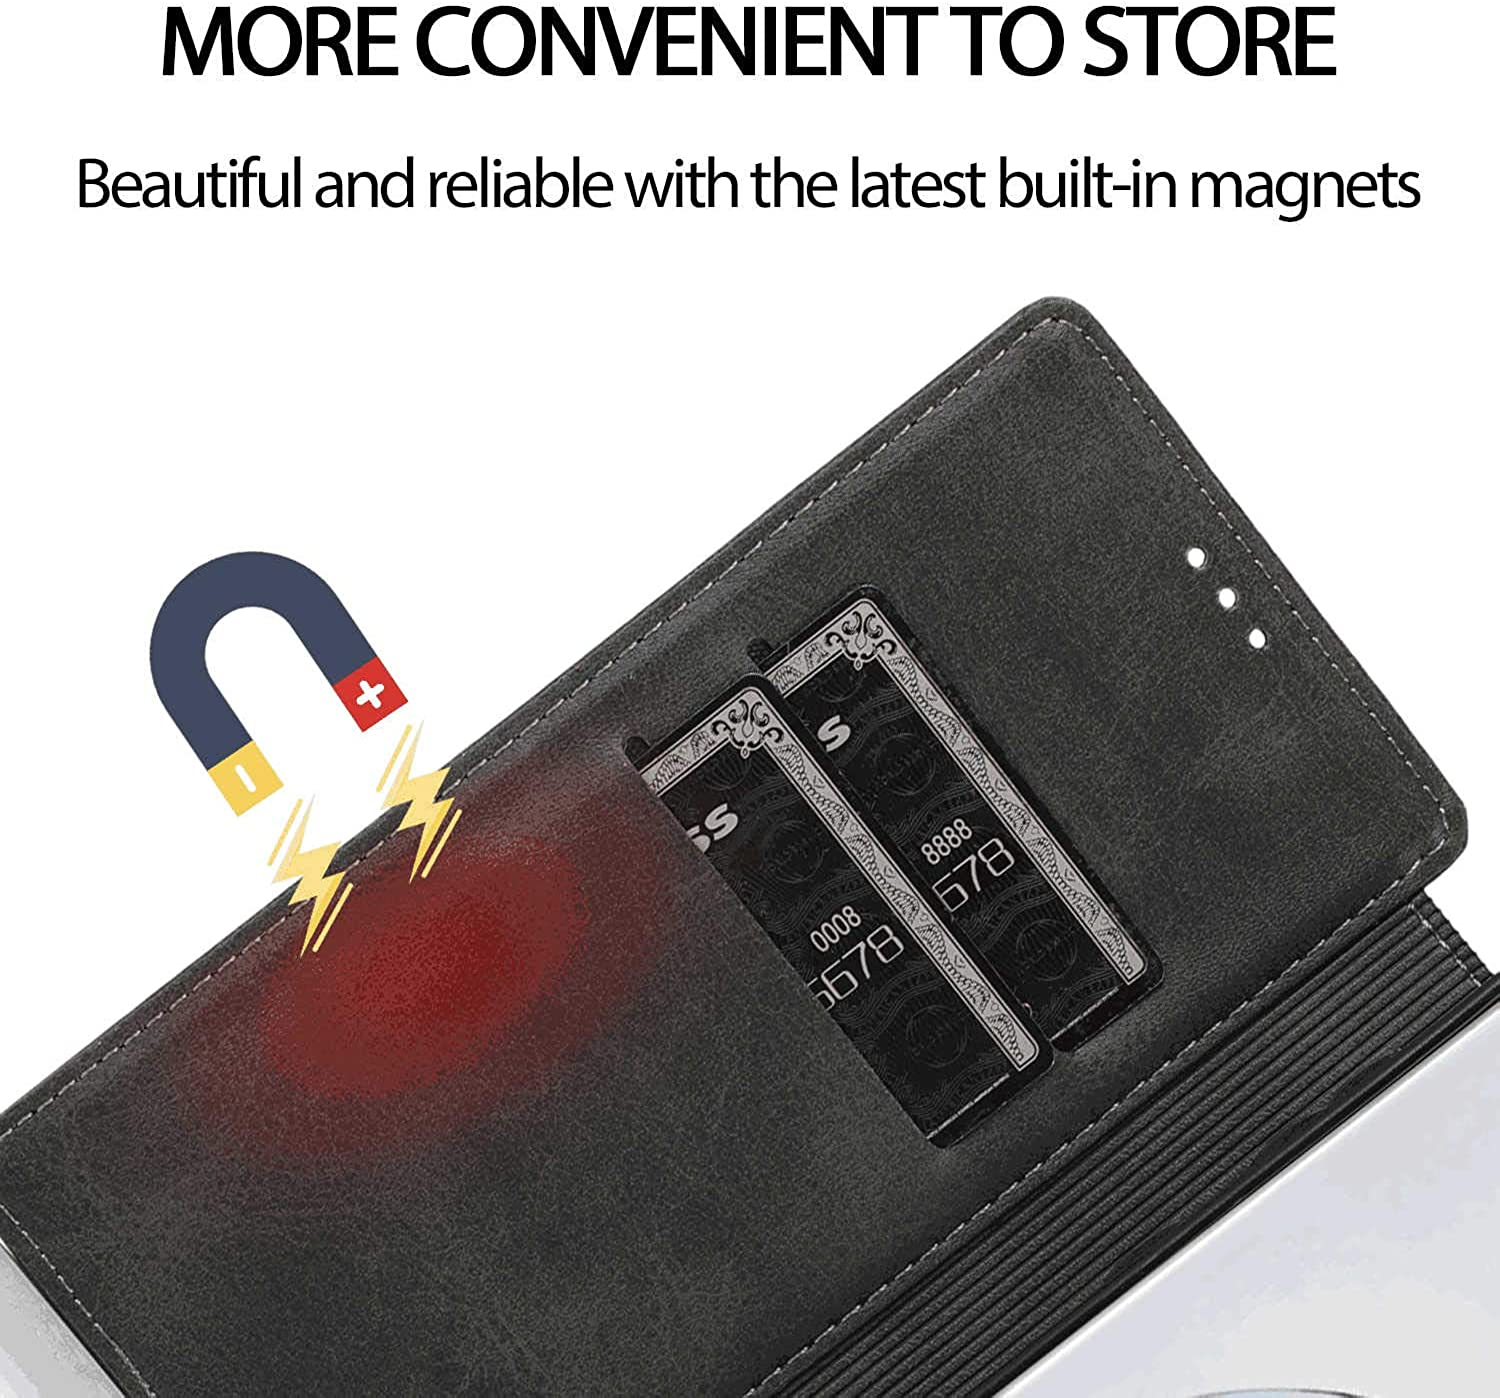 Cover for Leather Kickstand Extra-Protective Business Card Holders Mobile Phone case Flip Cover Samsung Galaxy S10 Plus Flip Case